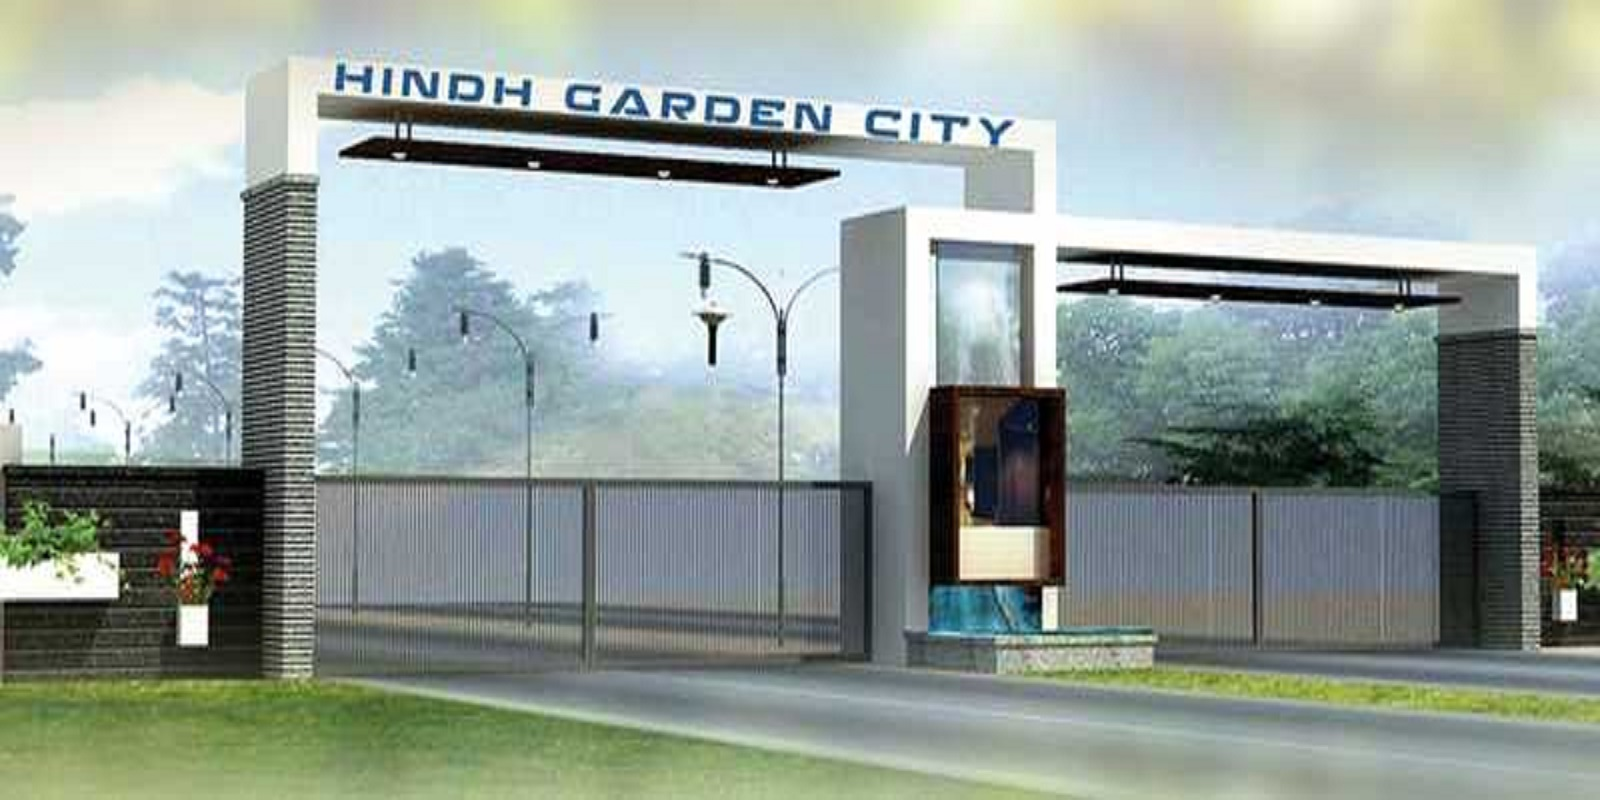 hindh garden city project project large image1